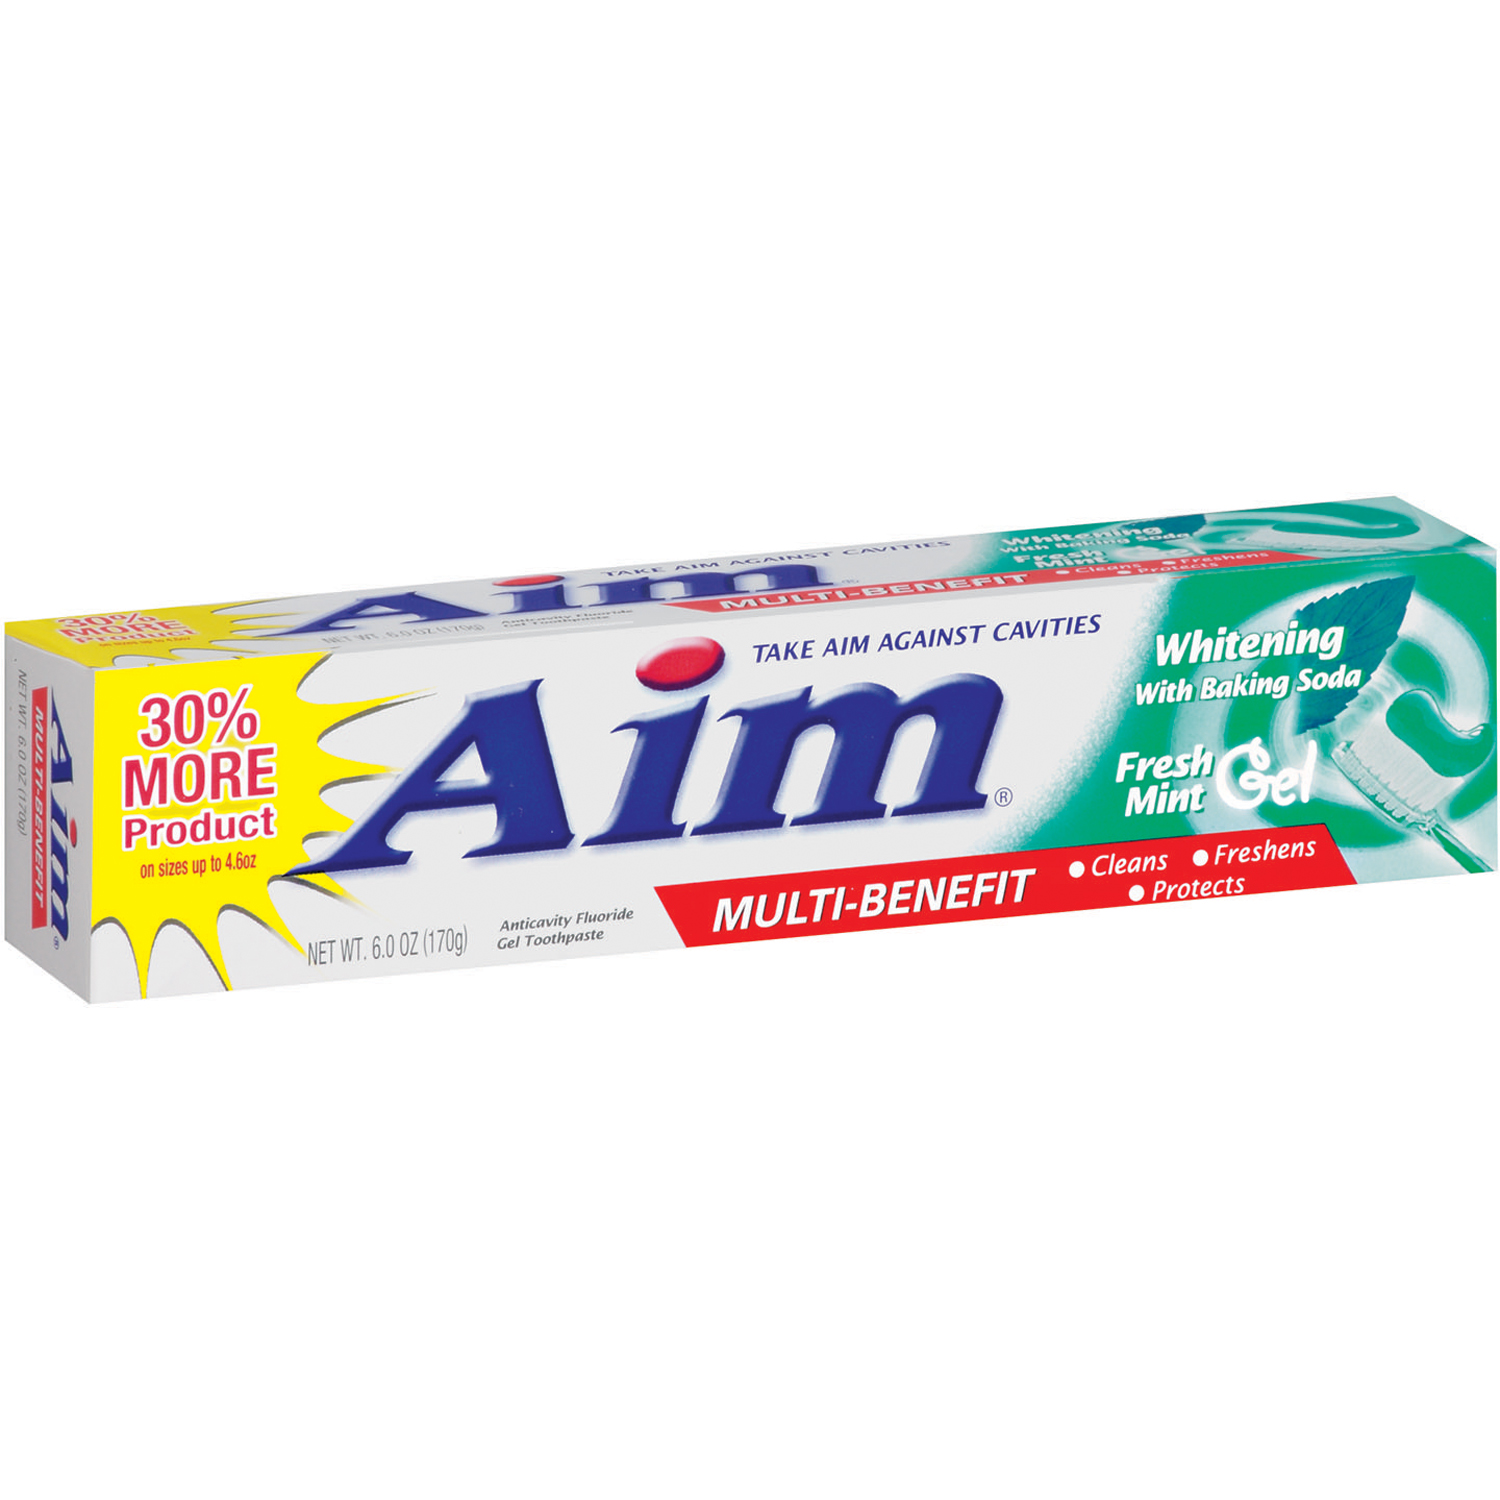 Aim® Multi Benefit Whitening with Baking Soda Fresh Mint Gel Toothpaste 6 oz. Box